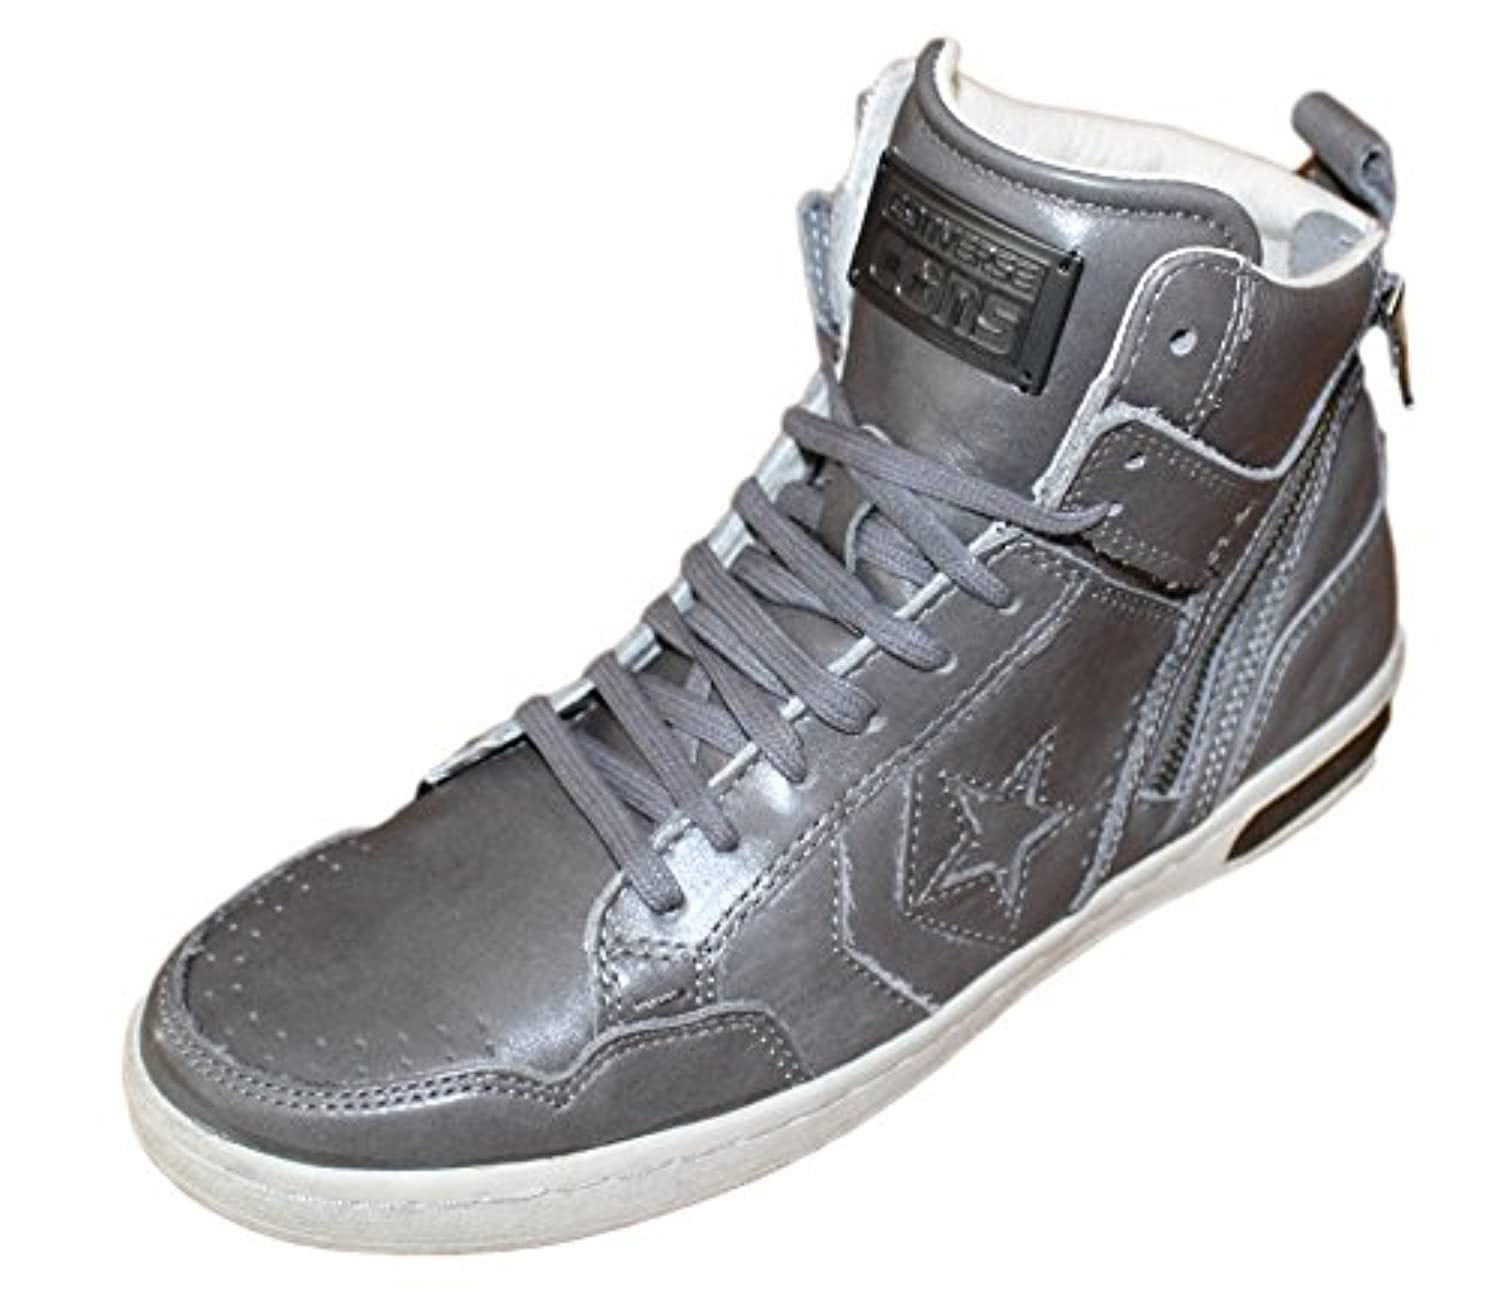 4888097c0cca ... uk converse john varvatos weapon charcoal 139953c 087 size 7.5 abca6  4f162